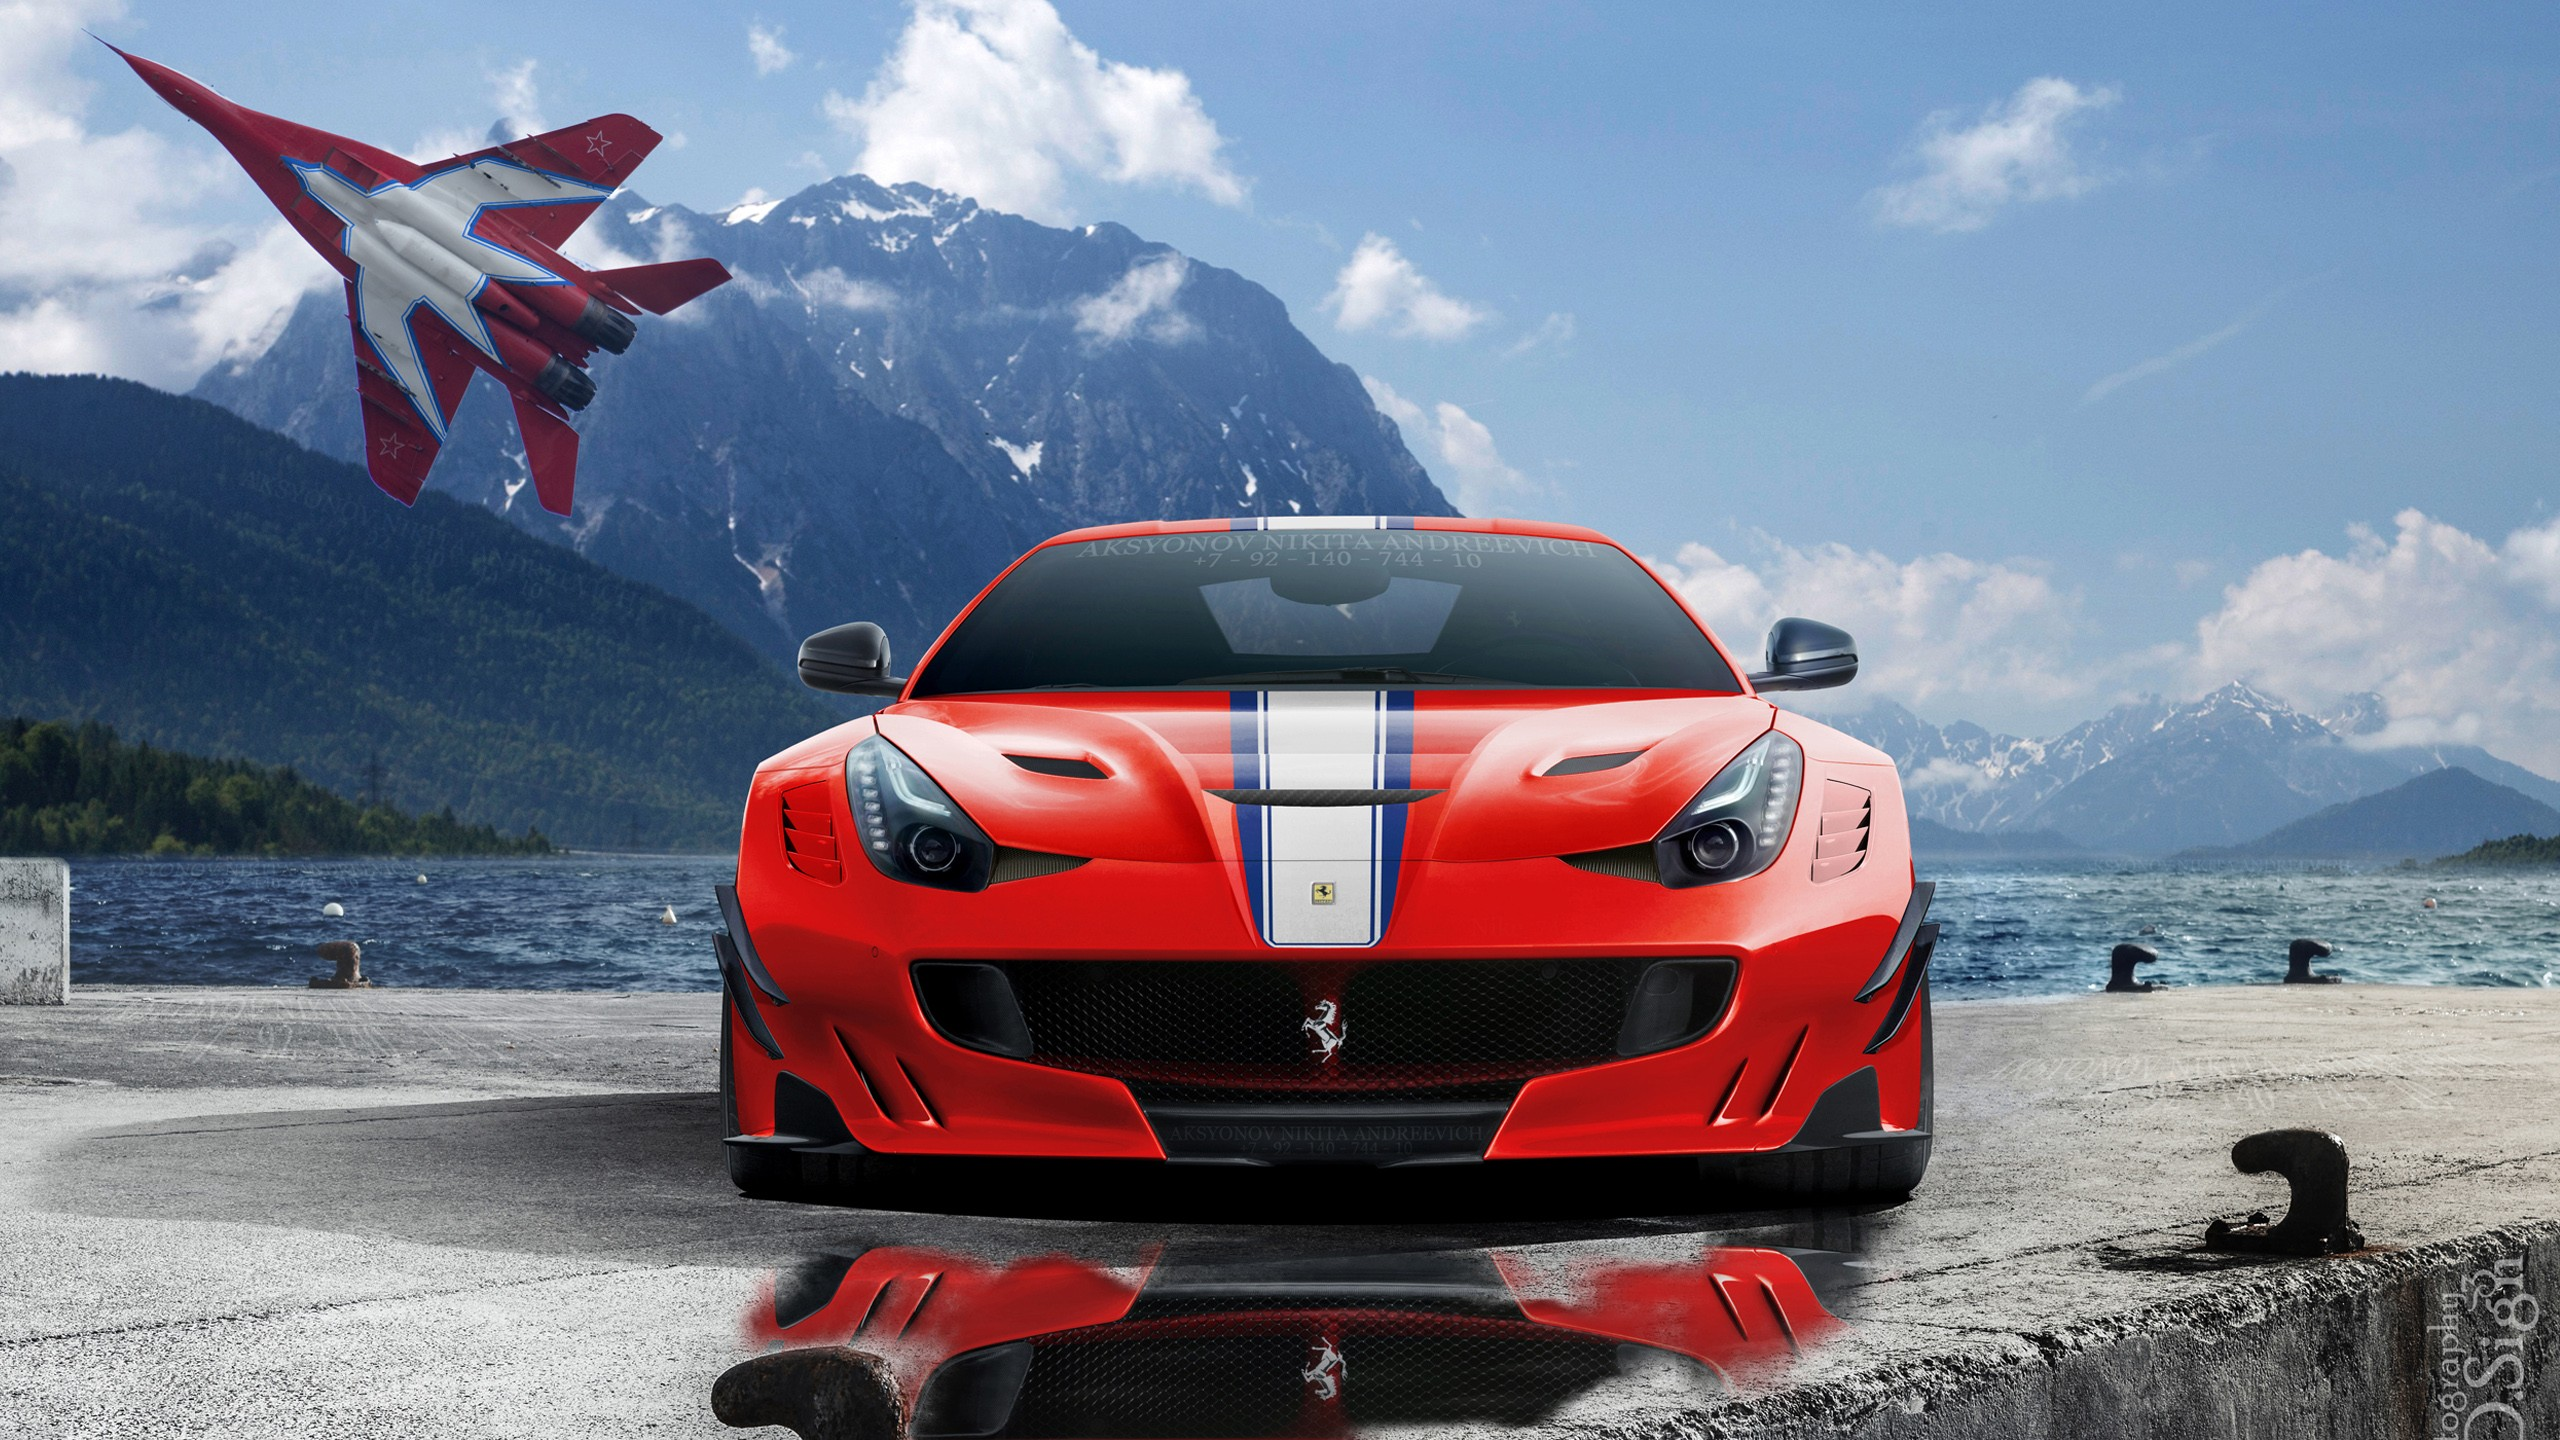 Red Ferrari Italia By Tomirri Photography px Wallpaper